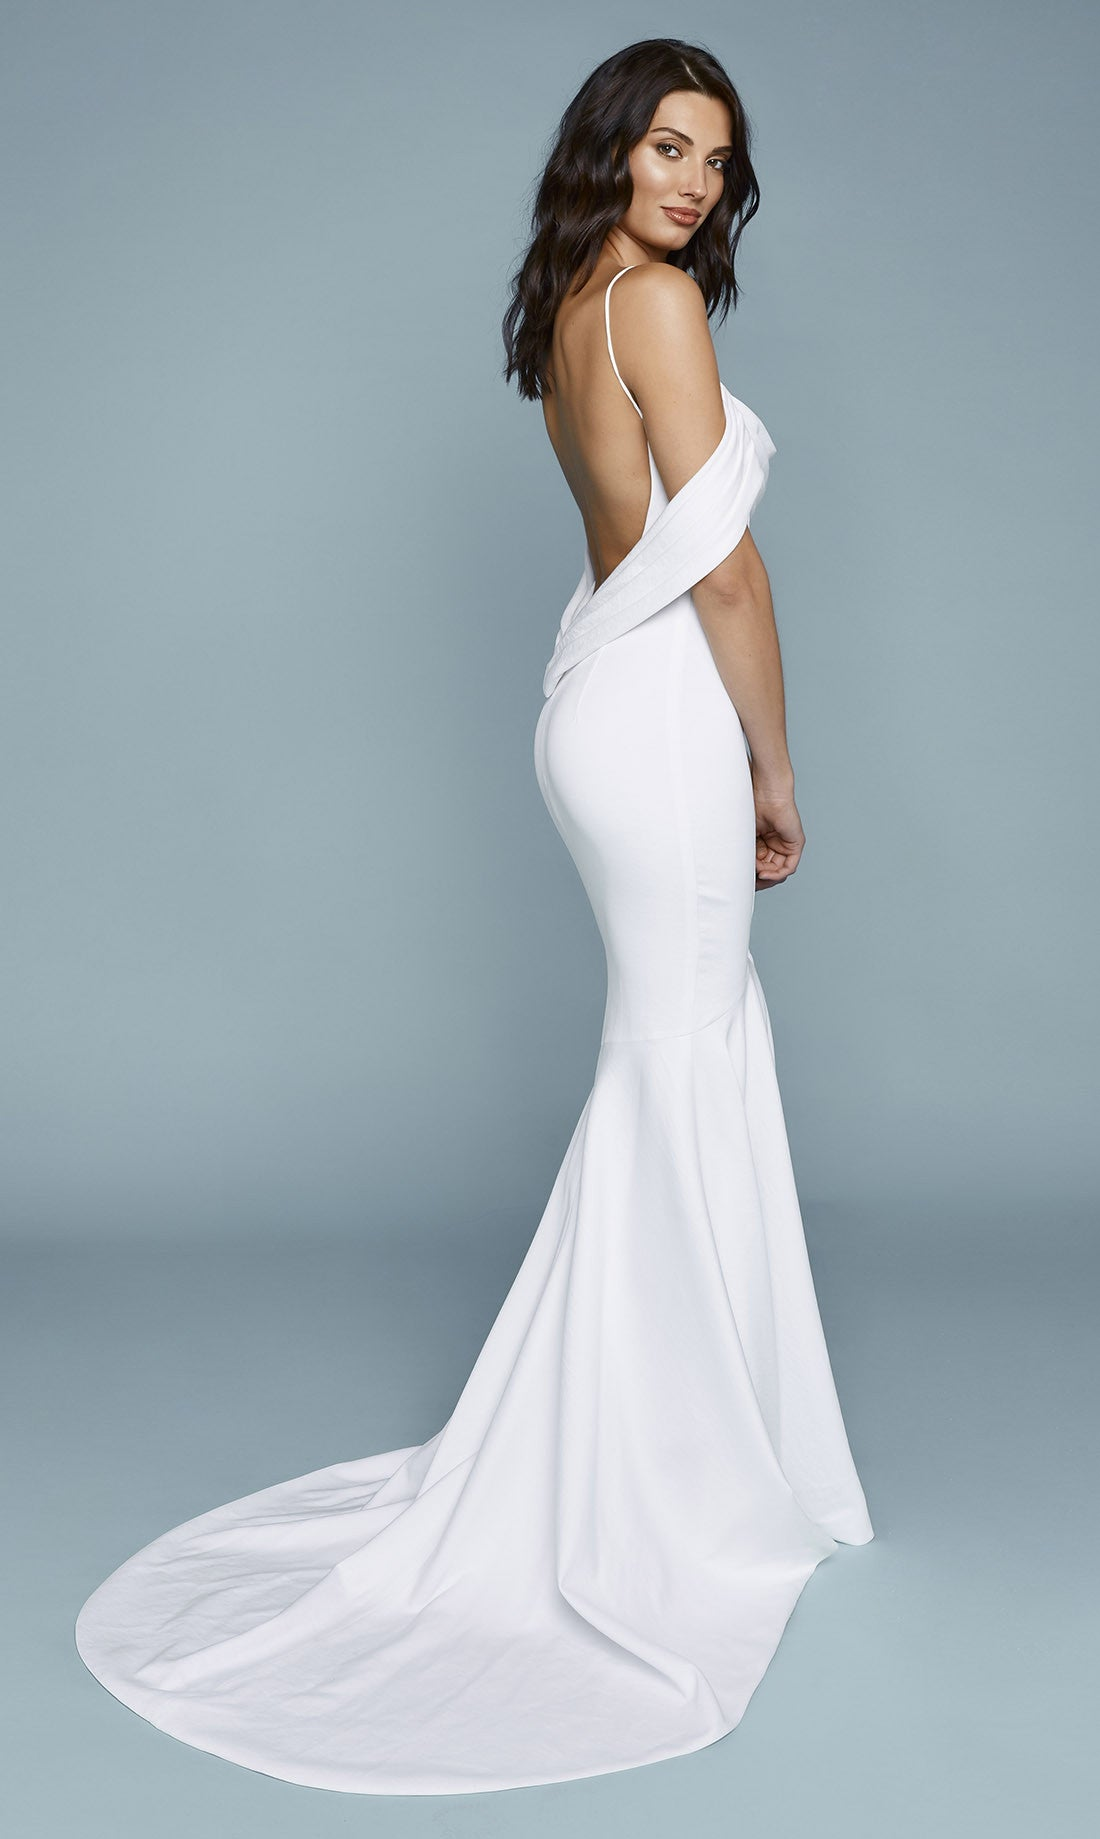 Marbella Gown | Katie May